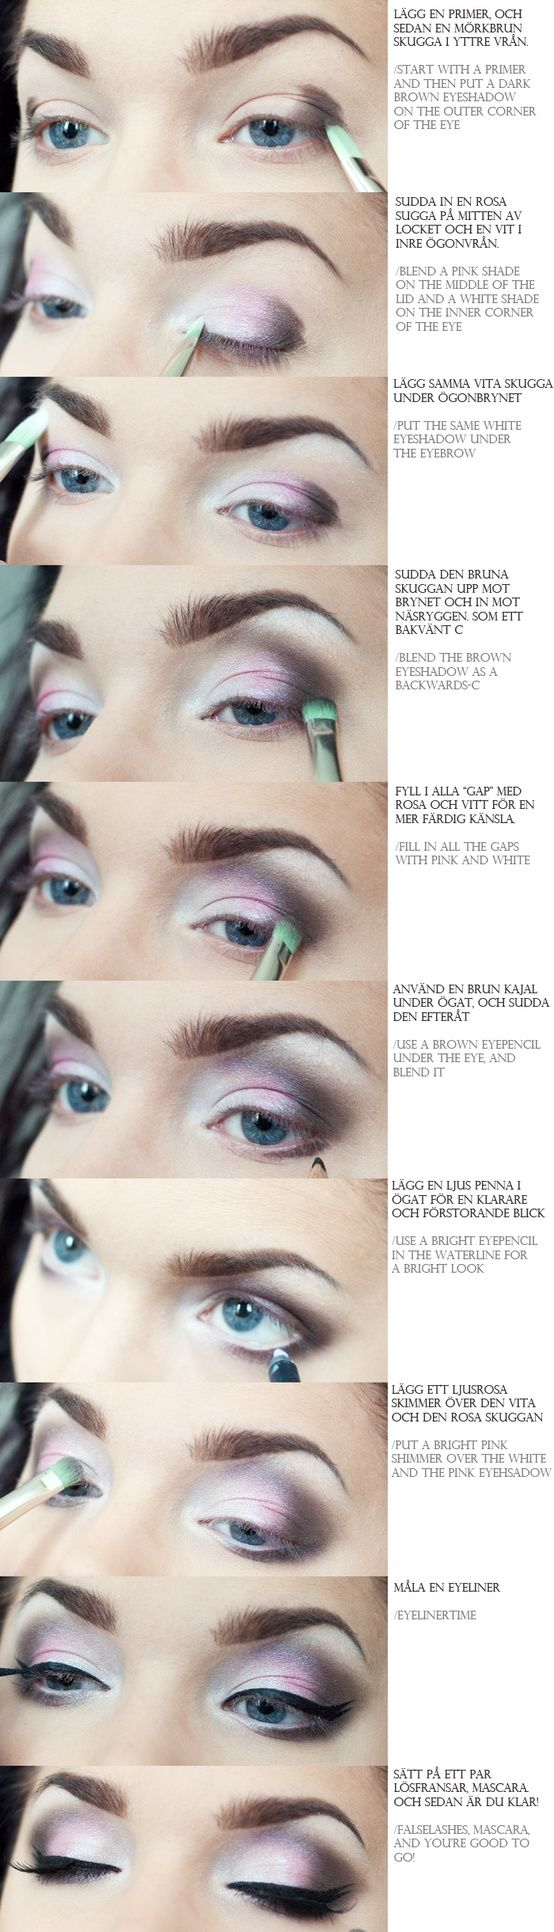 eyes but without pink. I'd use a different color. I hate pink eyeshadow!